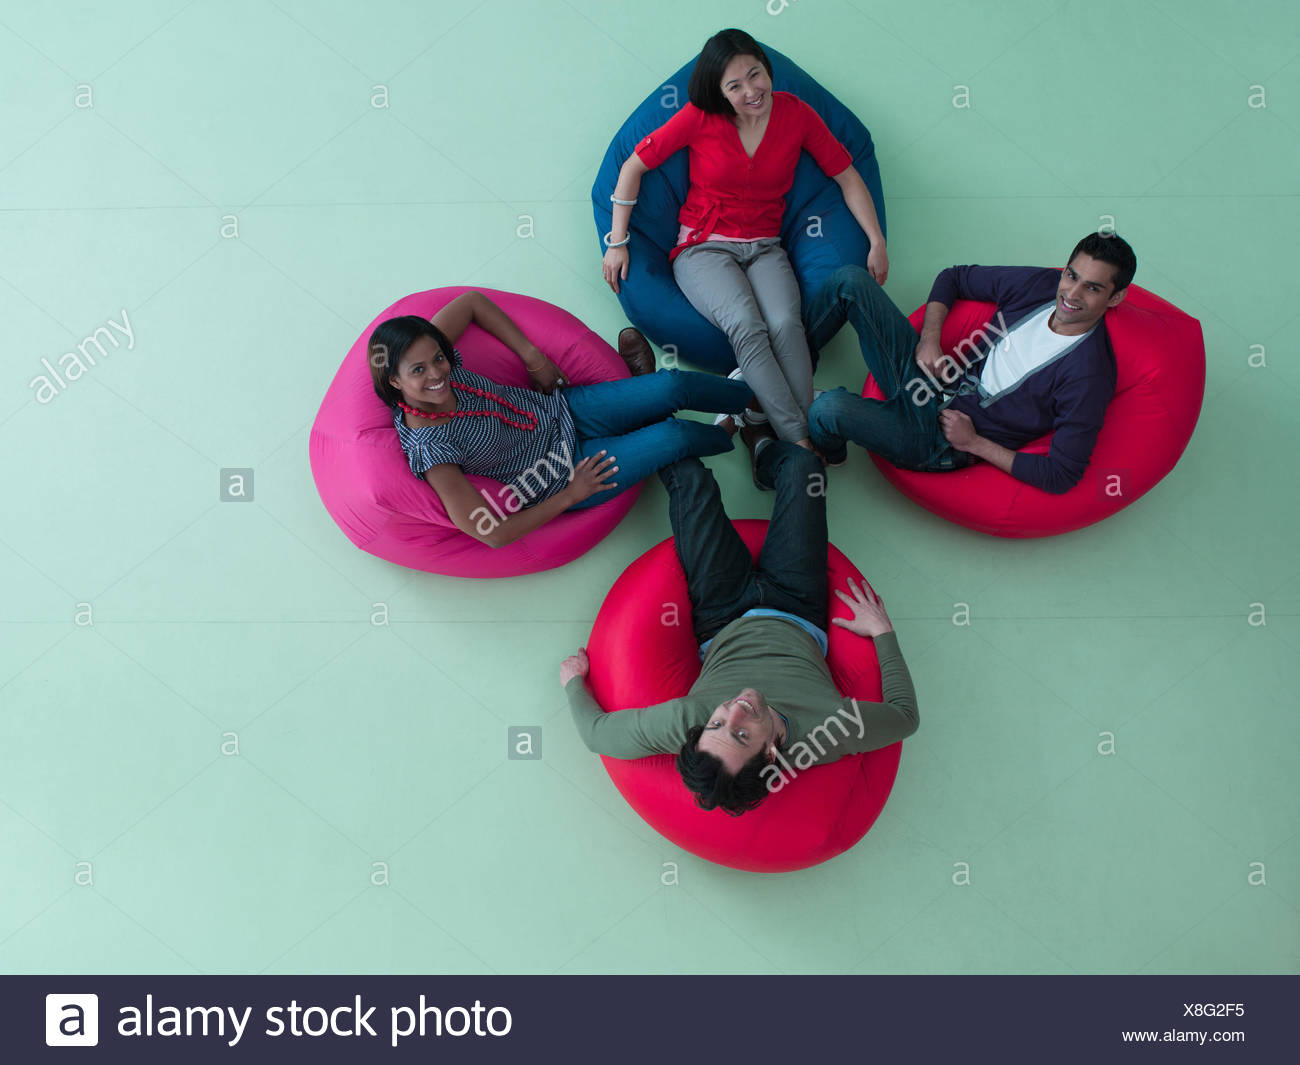 Smiling men and women  bean bag chairs - Stock Image